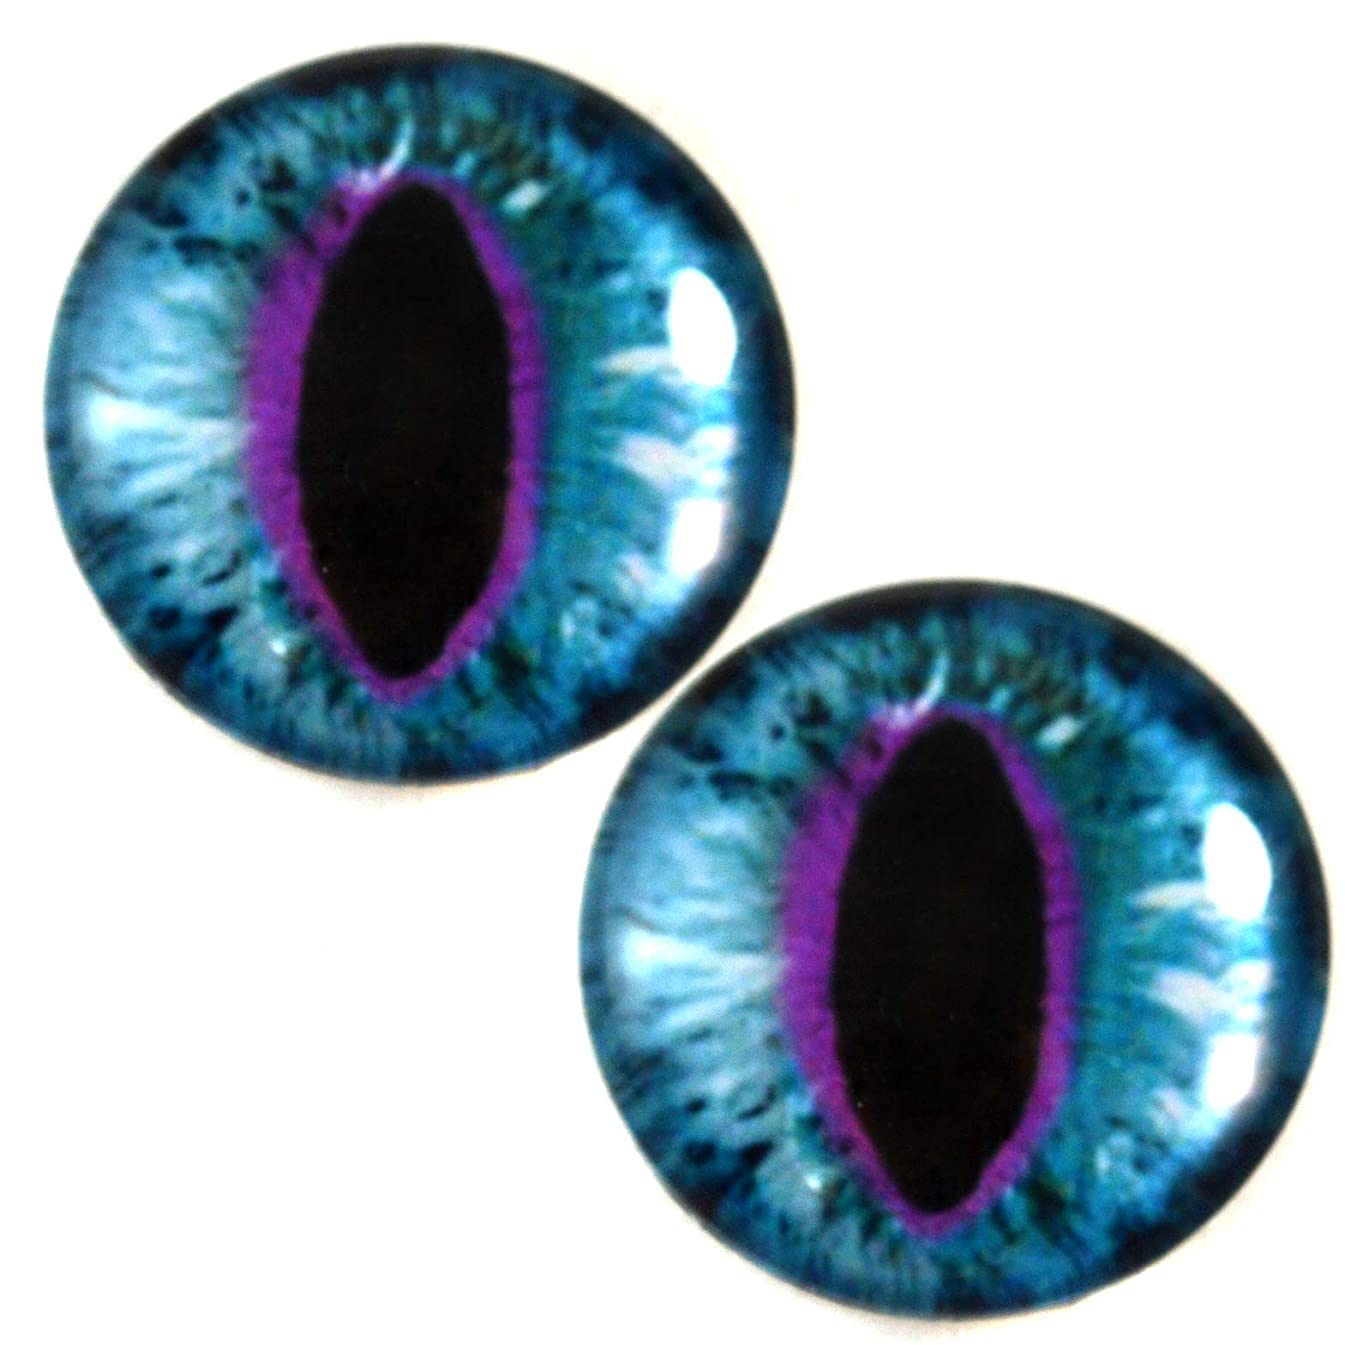 30mm Blue and Purple Cat or Dragon Glass Eyes Pair for Art Dolls, Sculptures, Props, Masks, Fursuits, Jewelry Making, Taxidermy, and More